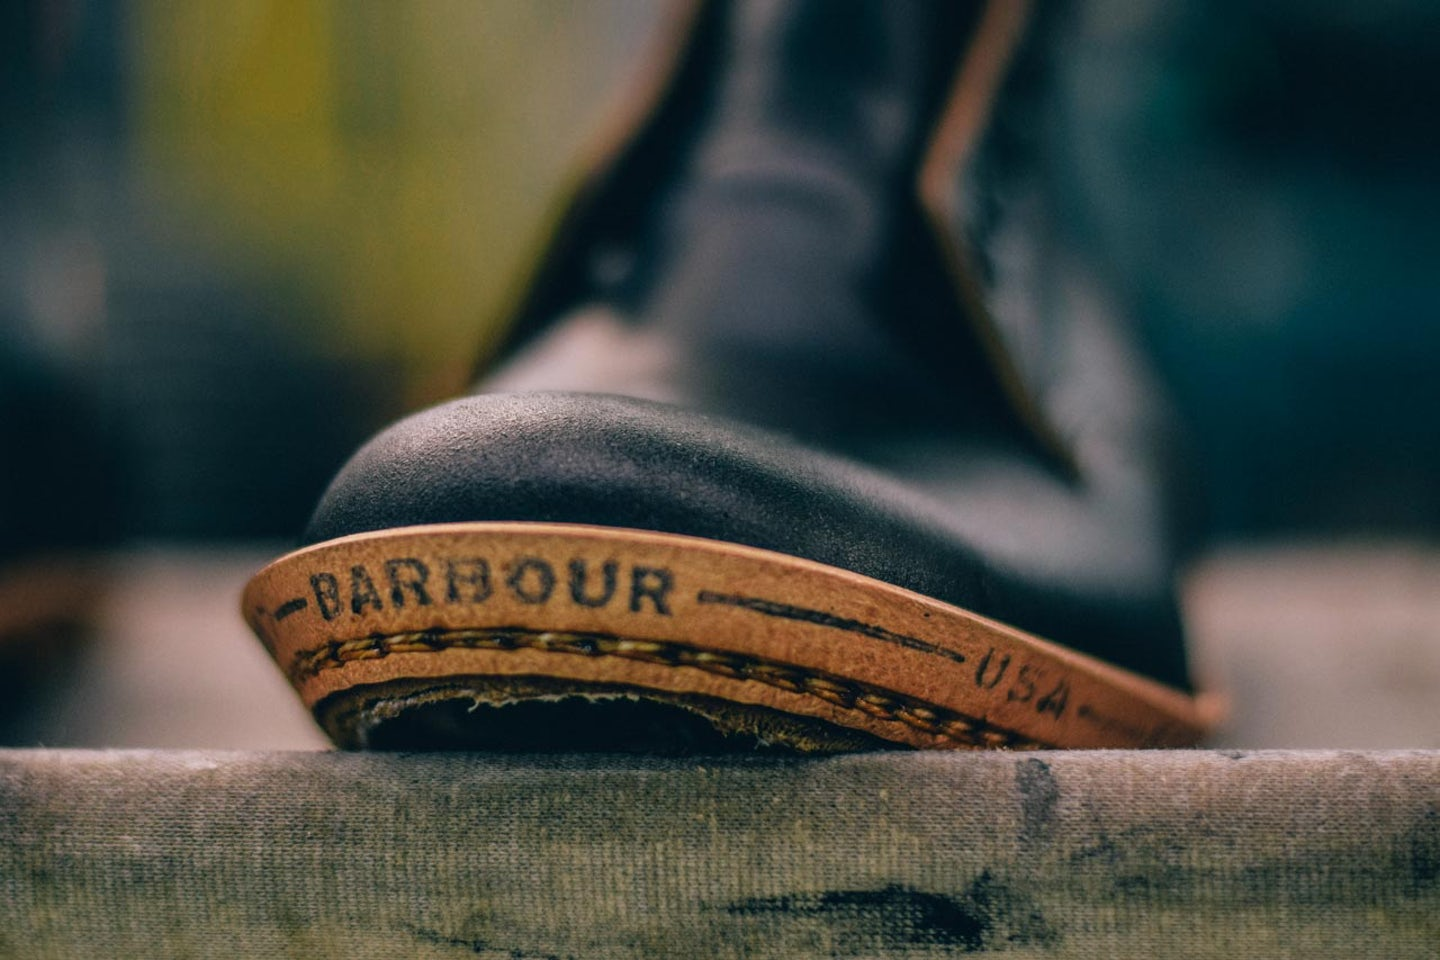 Barbour Welt - The Parts You Never See But Always Notice